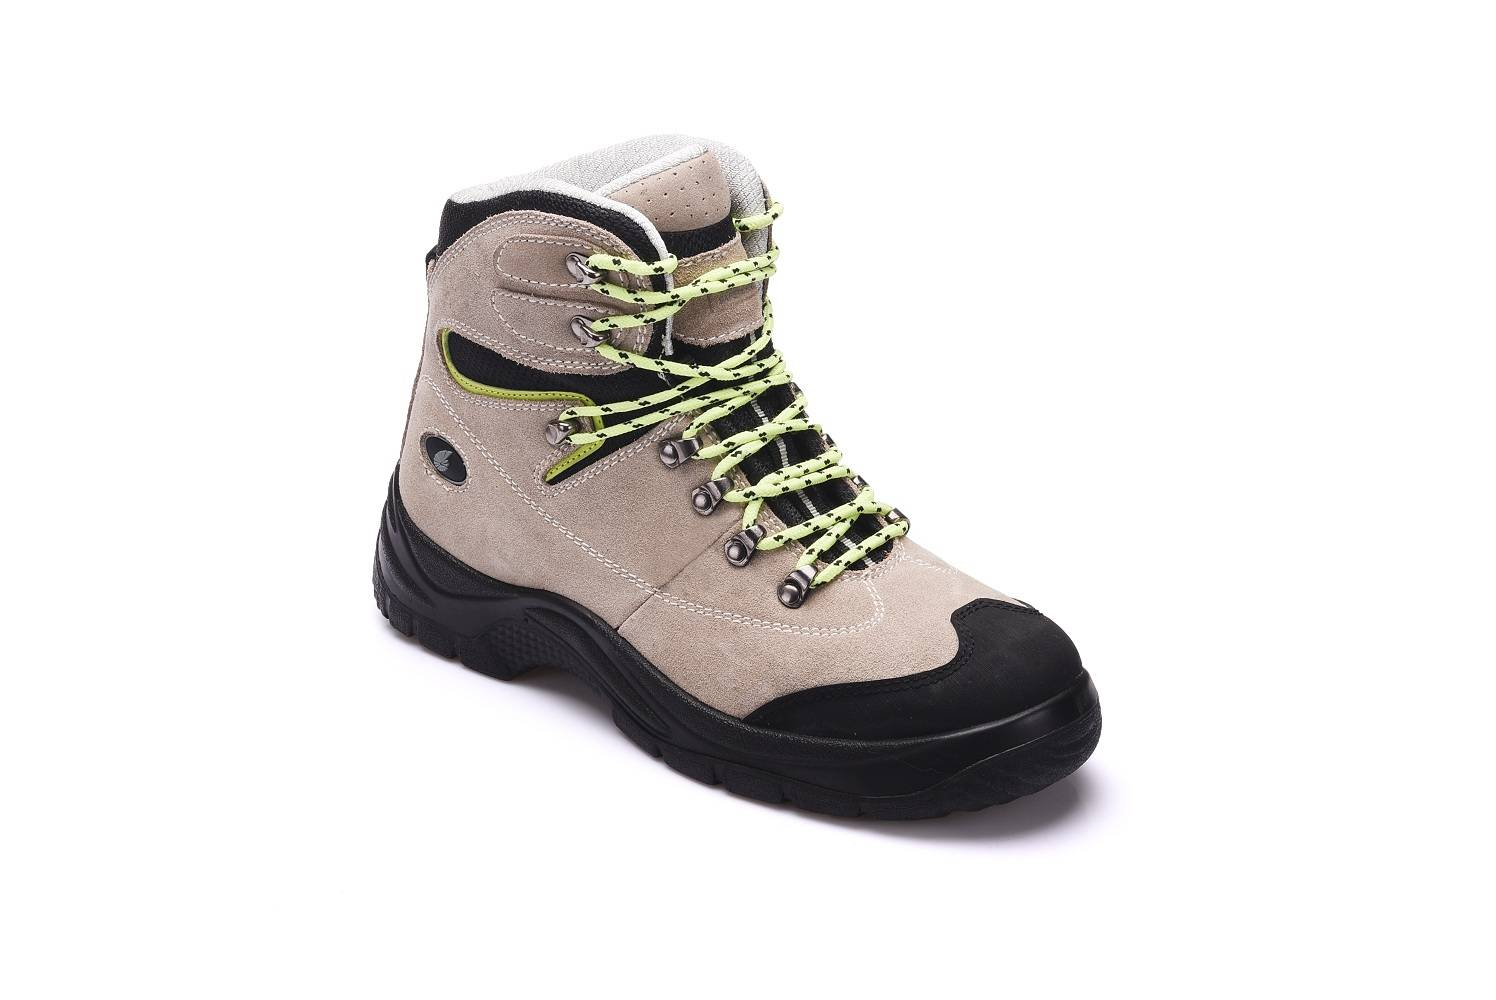 high cut outdoor safety shoes